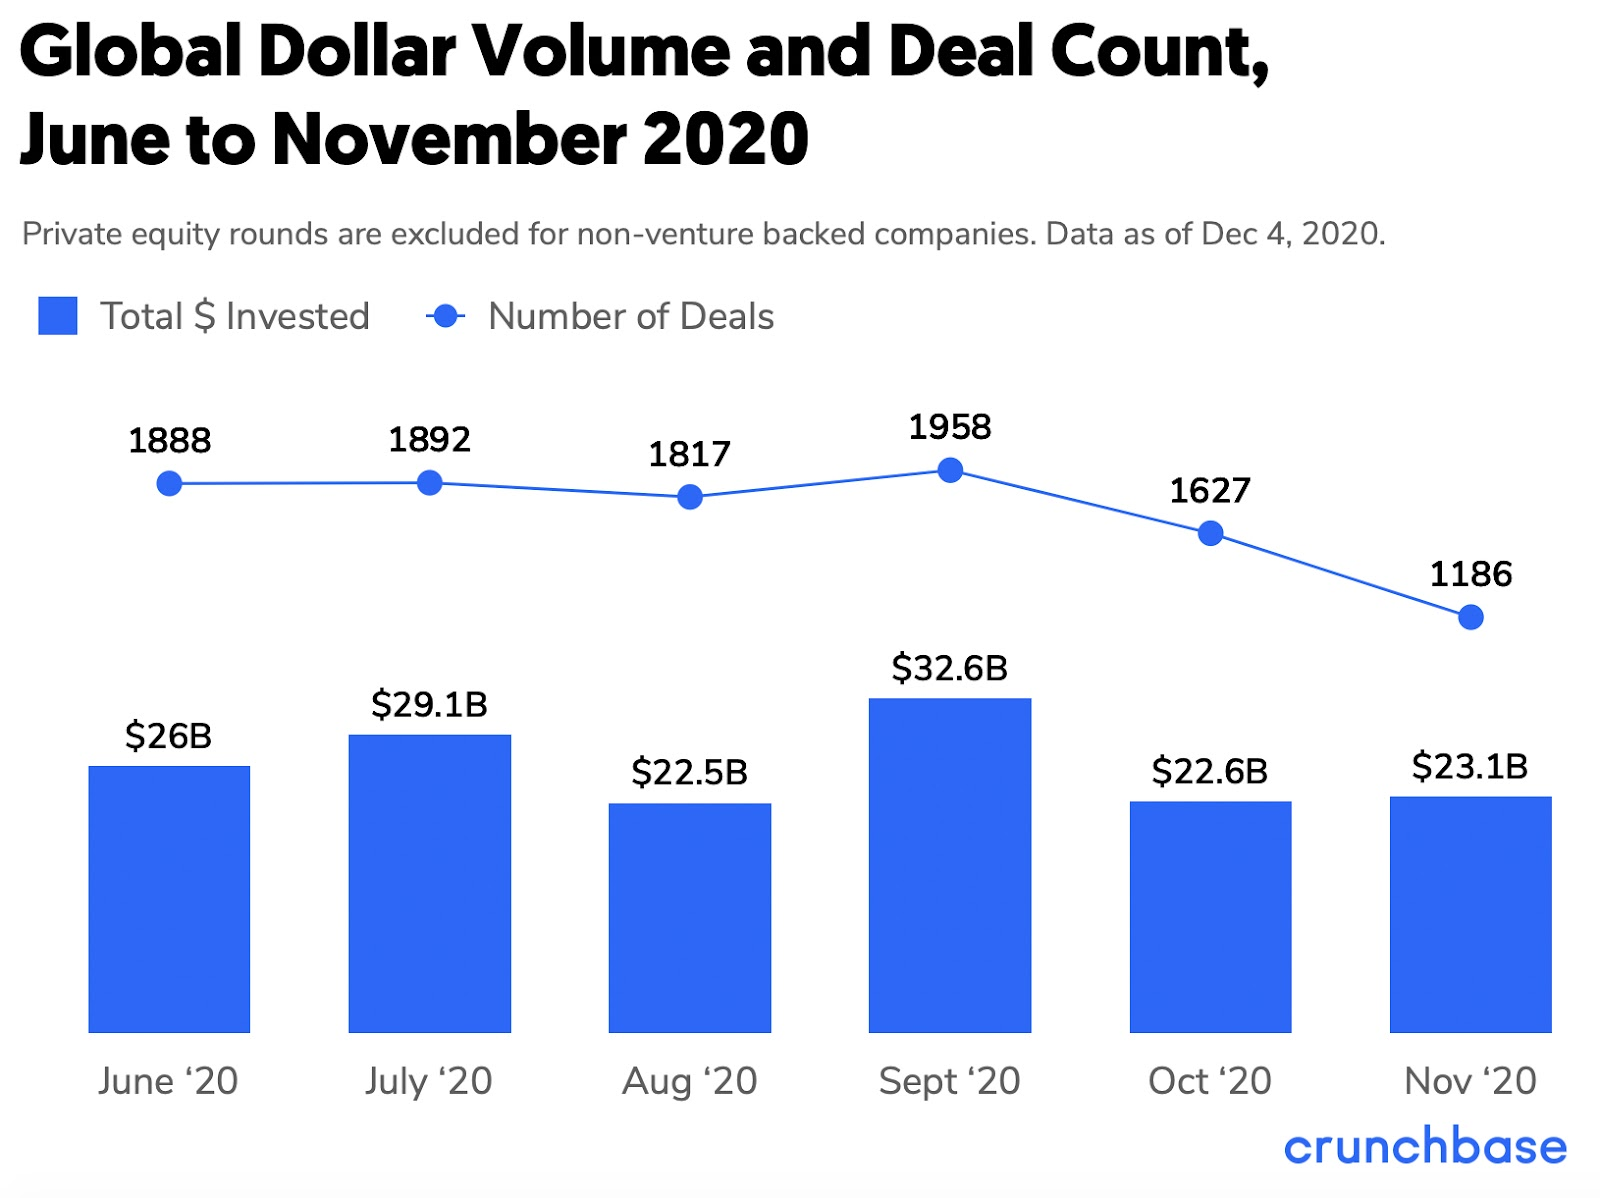 chart with global dollar volume and deal count from June to November 2020